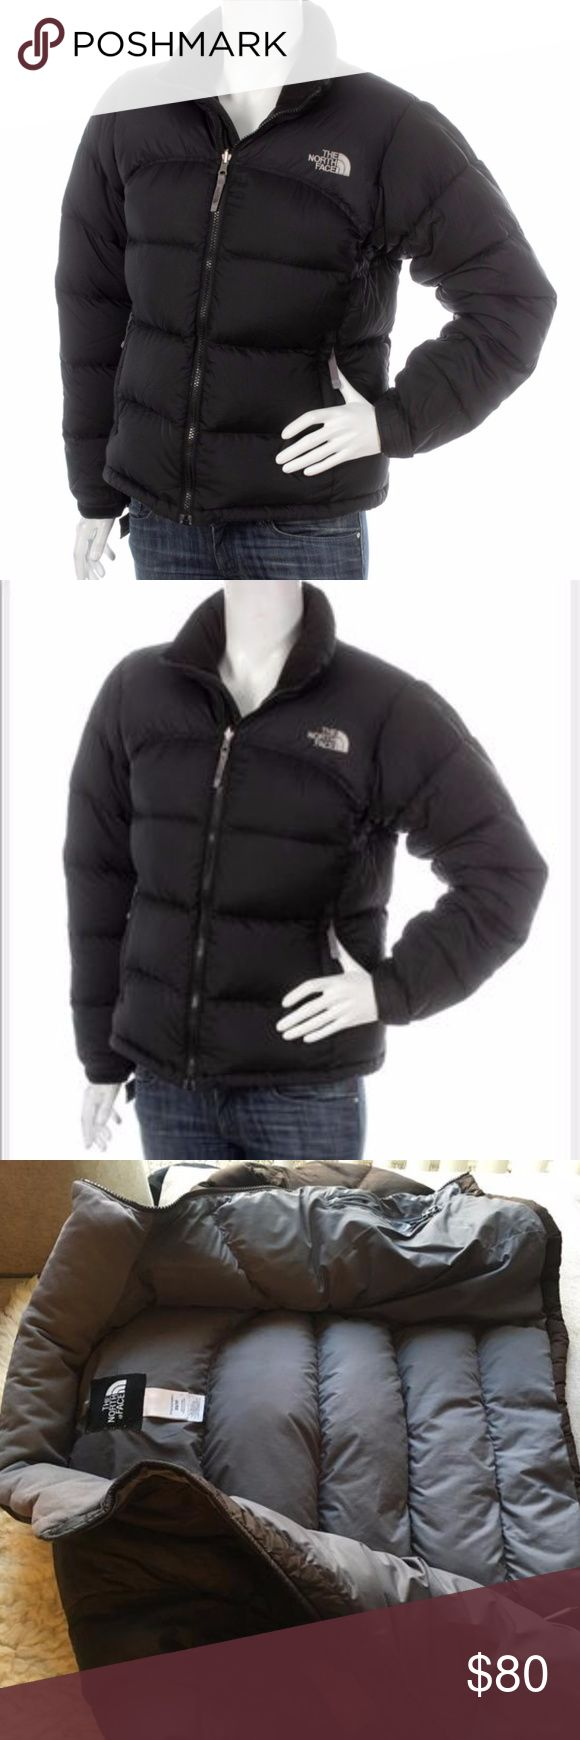 North Face 550 Goose Down Black Winter Coat Black color, Size medium, Women's but also fit Men, minimal use, doesn't have hood, black exterior, gray interior interior collar, minor defect on the outer right sleeve but will have that fixed, very warm and comfortable! The North Face Jackets & Coats Puffers